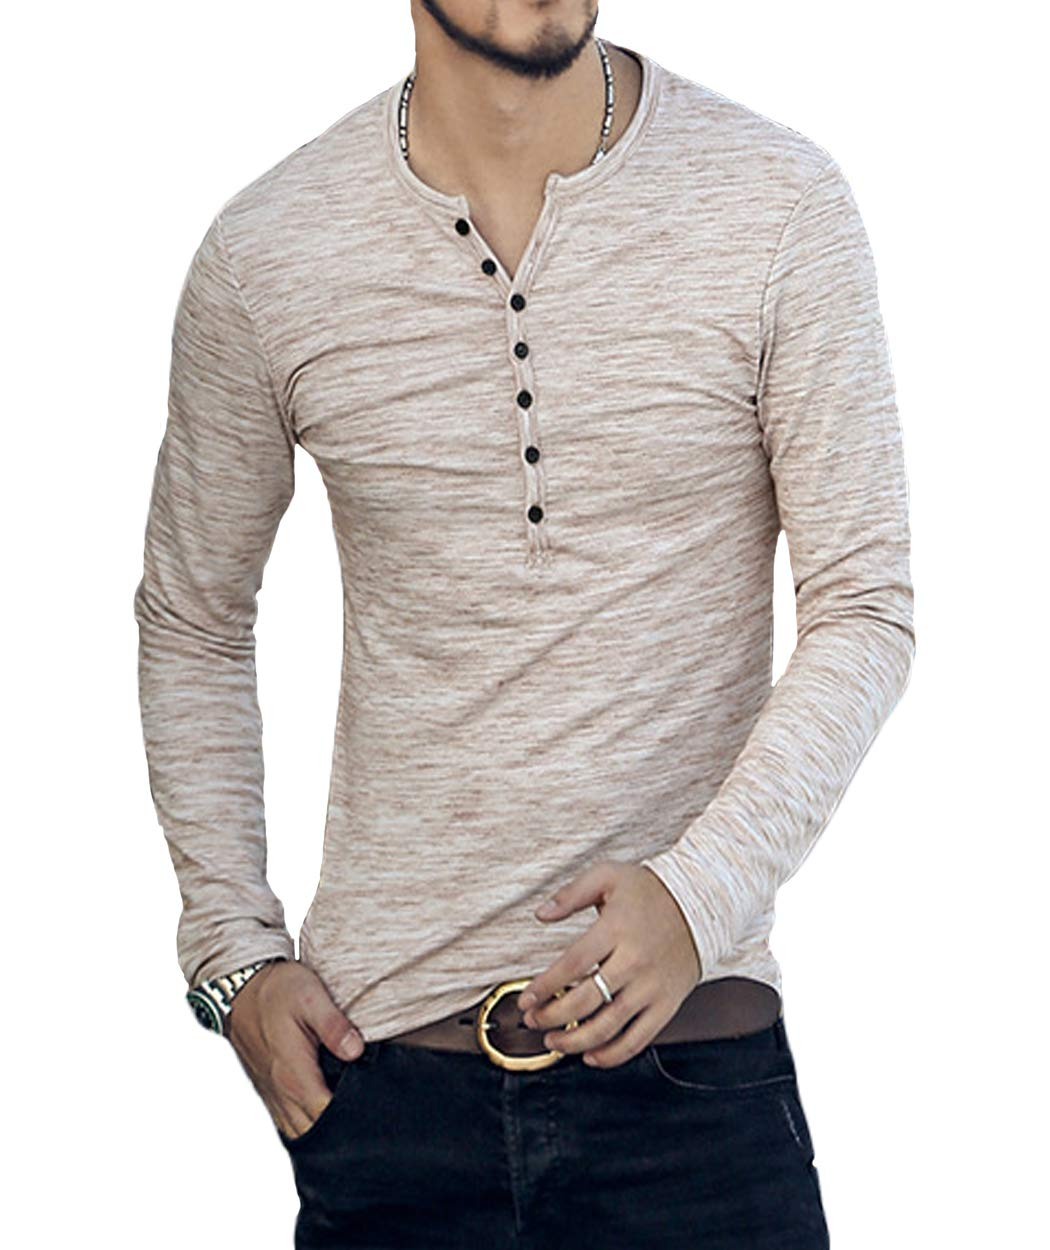 Neoyowo Men's Henley Shirt Casual Slim Fit Long Sleeve T-Shirt Soft V Neck Buttons Muscle Tops (Apricot, S)